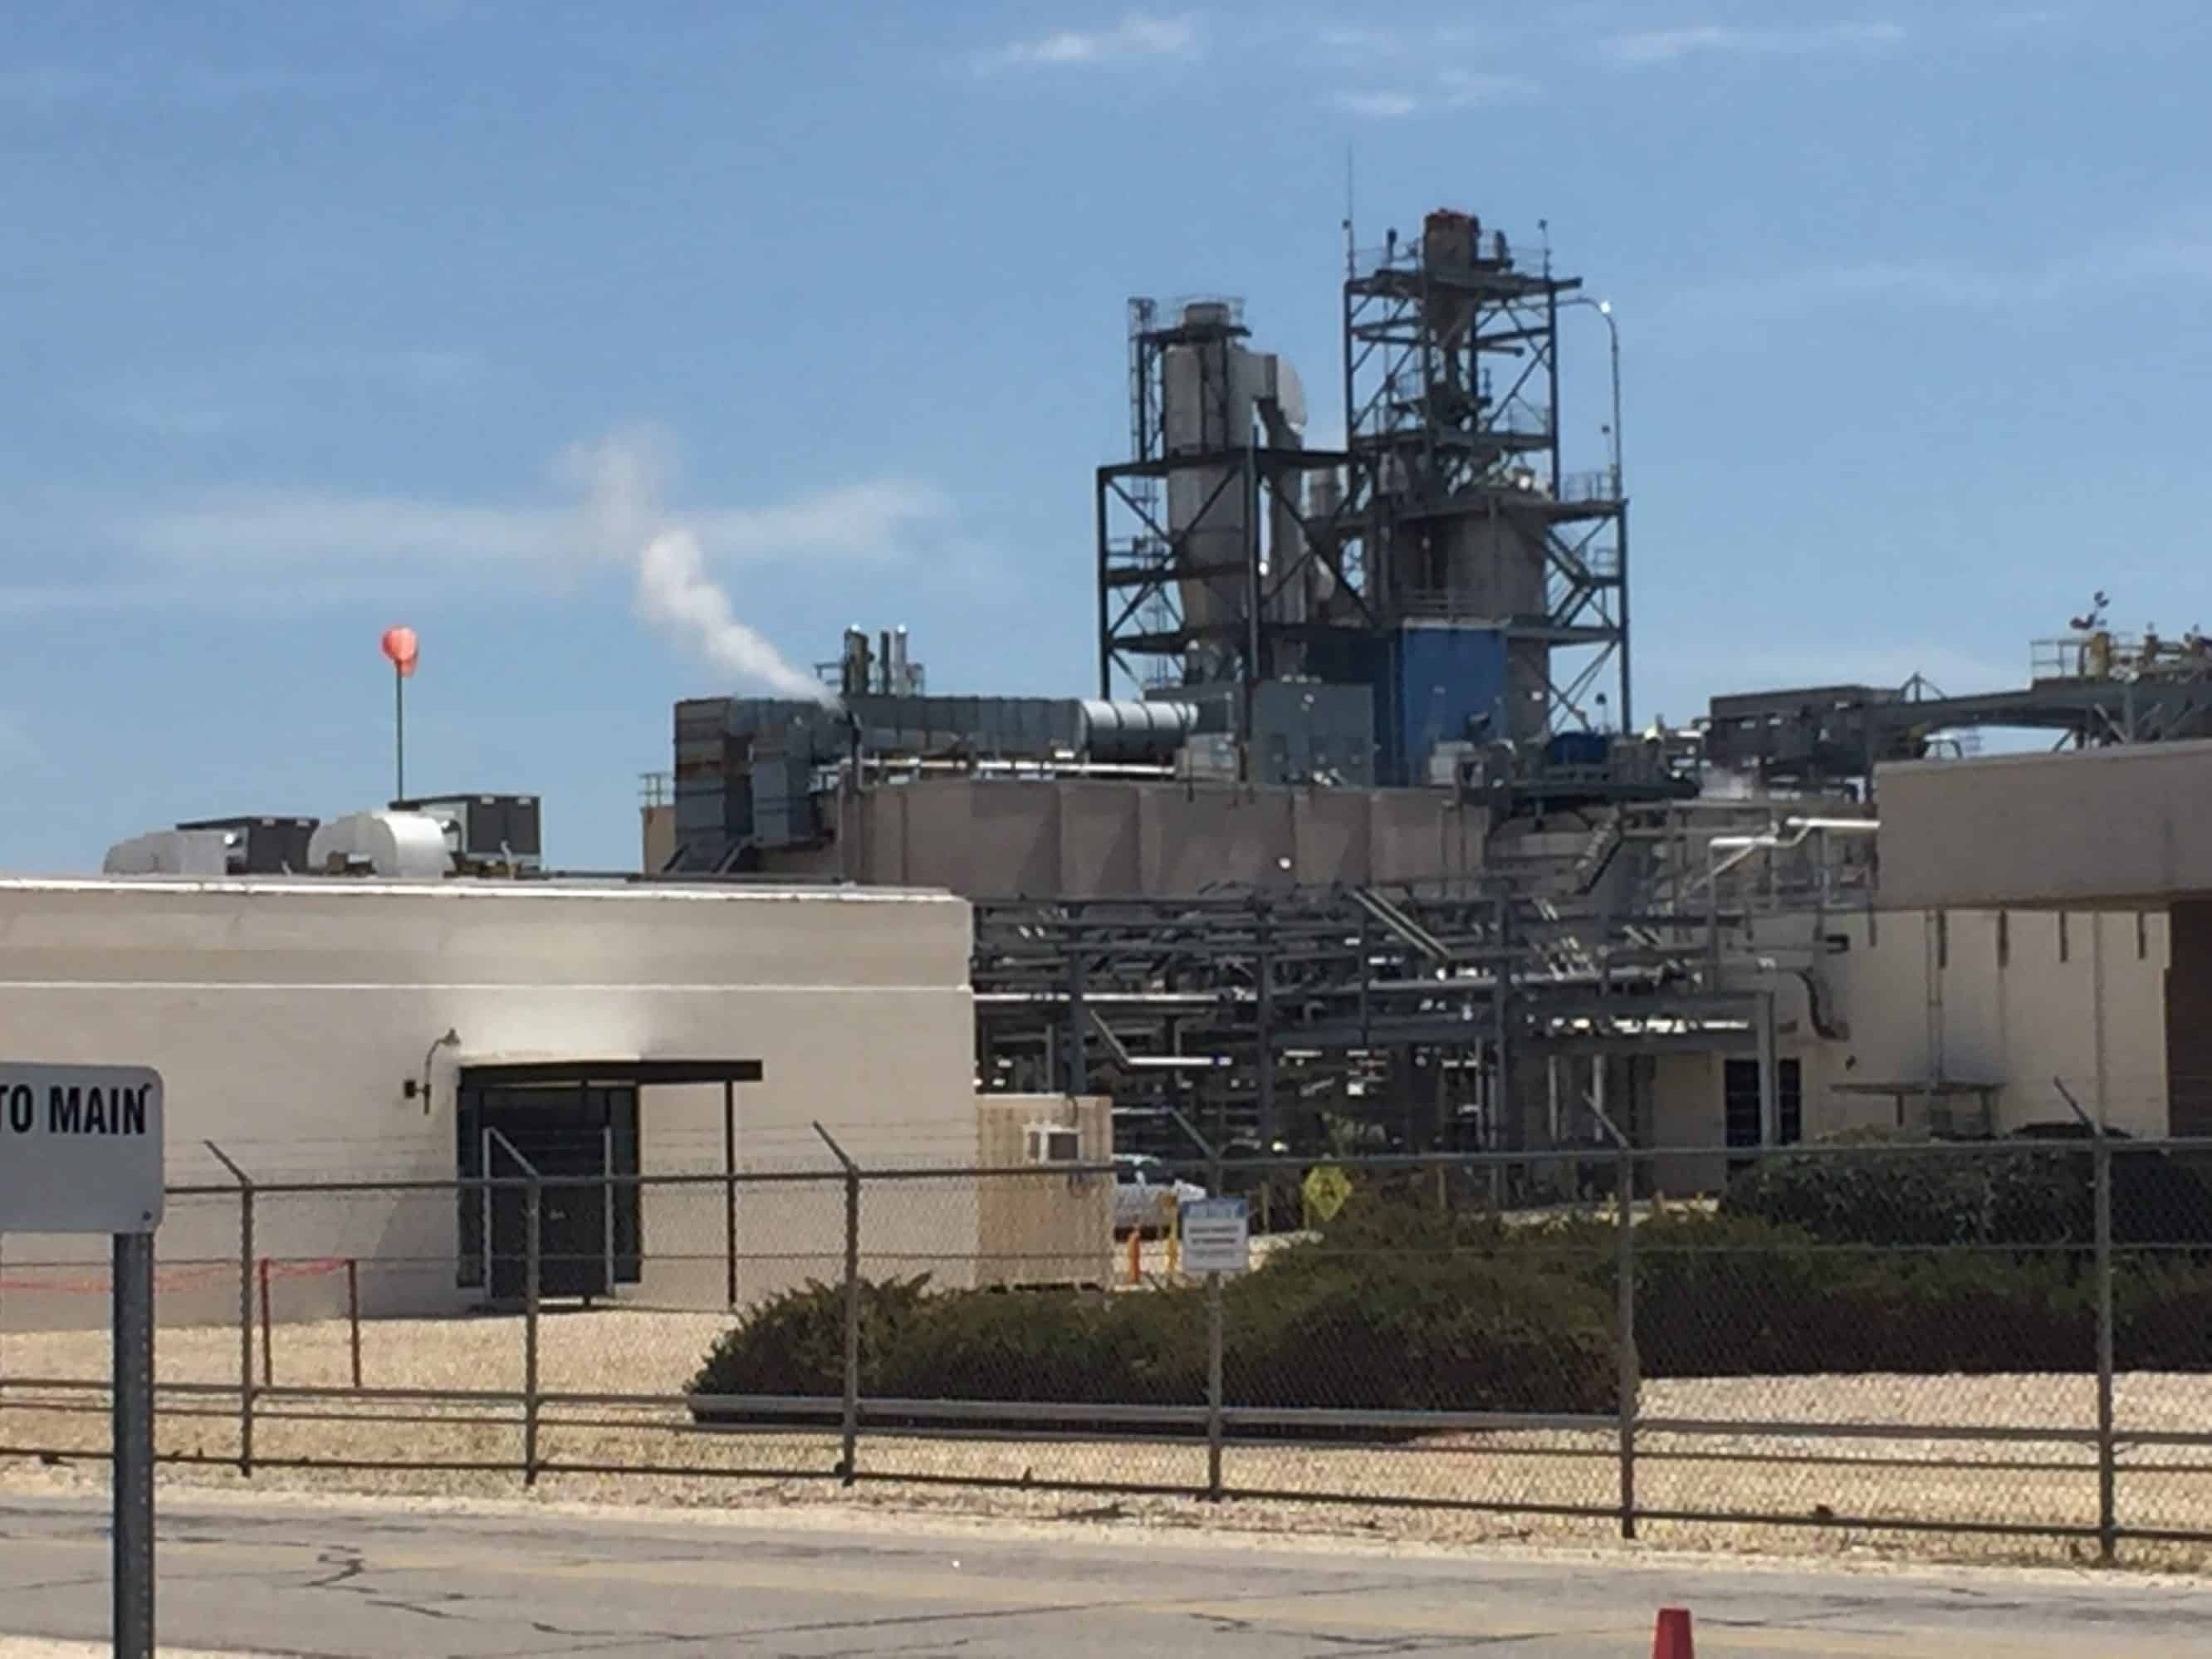 photograph of the industrial site on the border between Cumberland and Bladen Counties